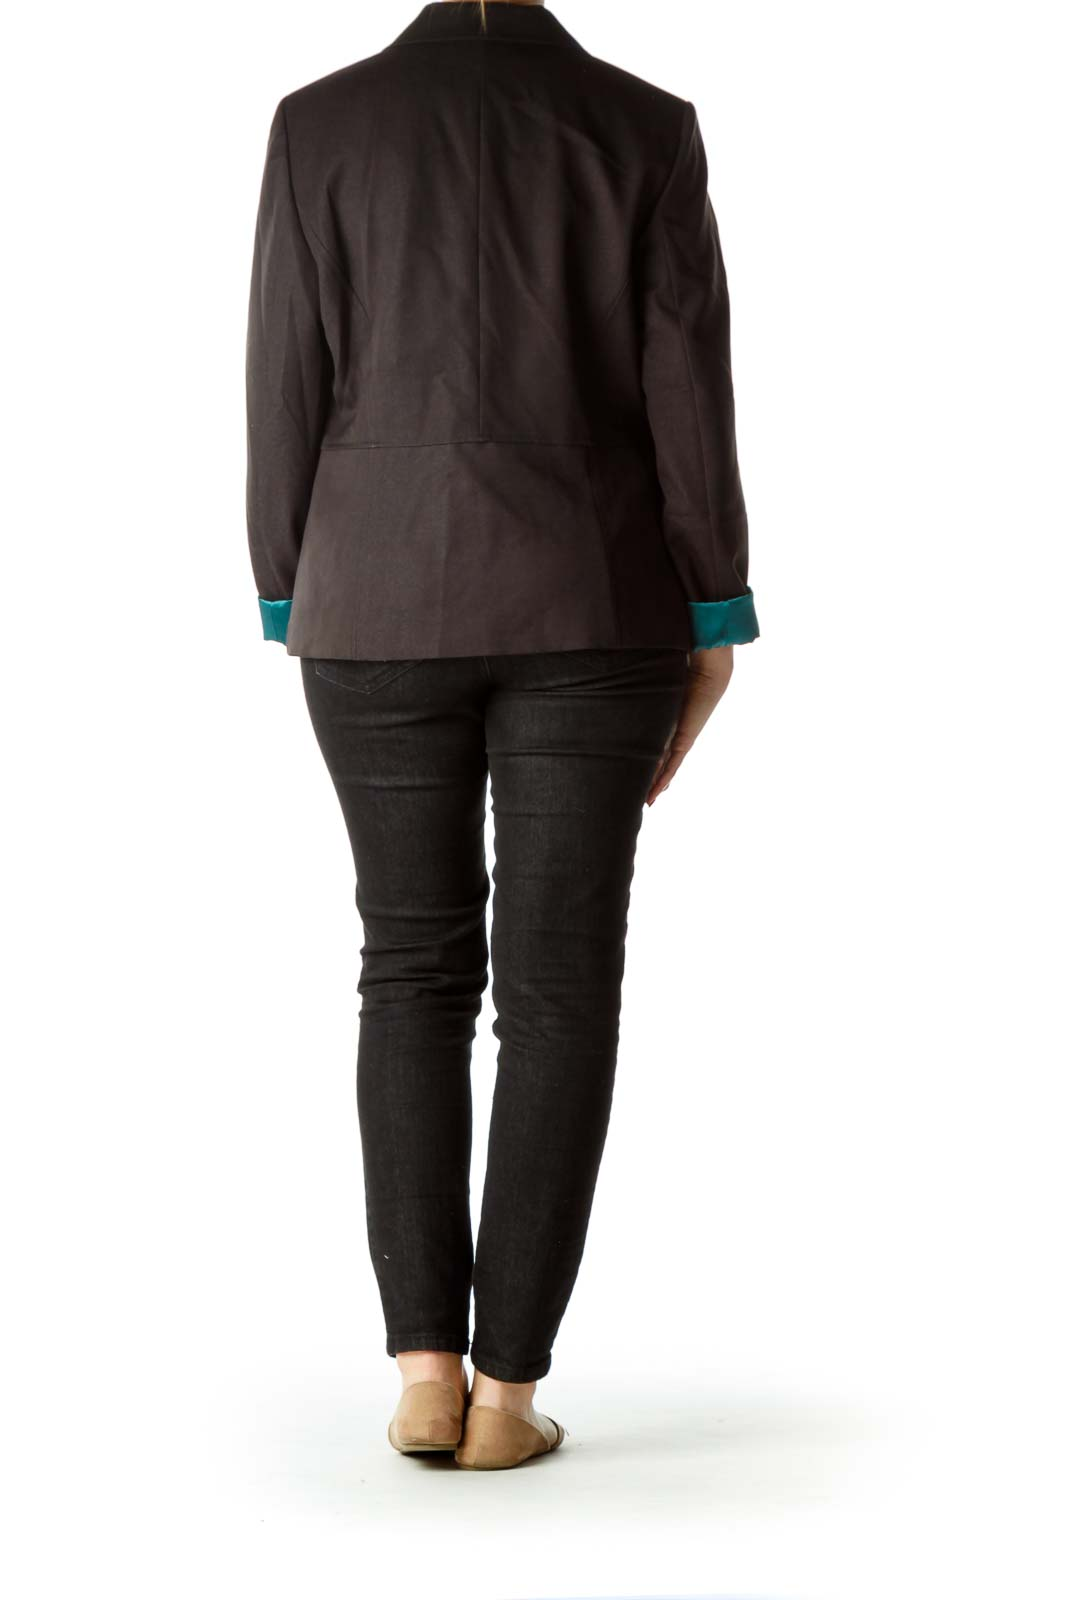 Black Suit Jacket with Teal Lining